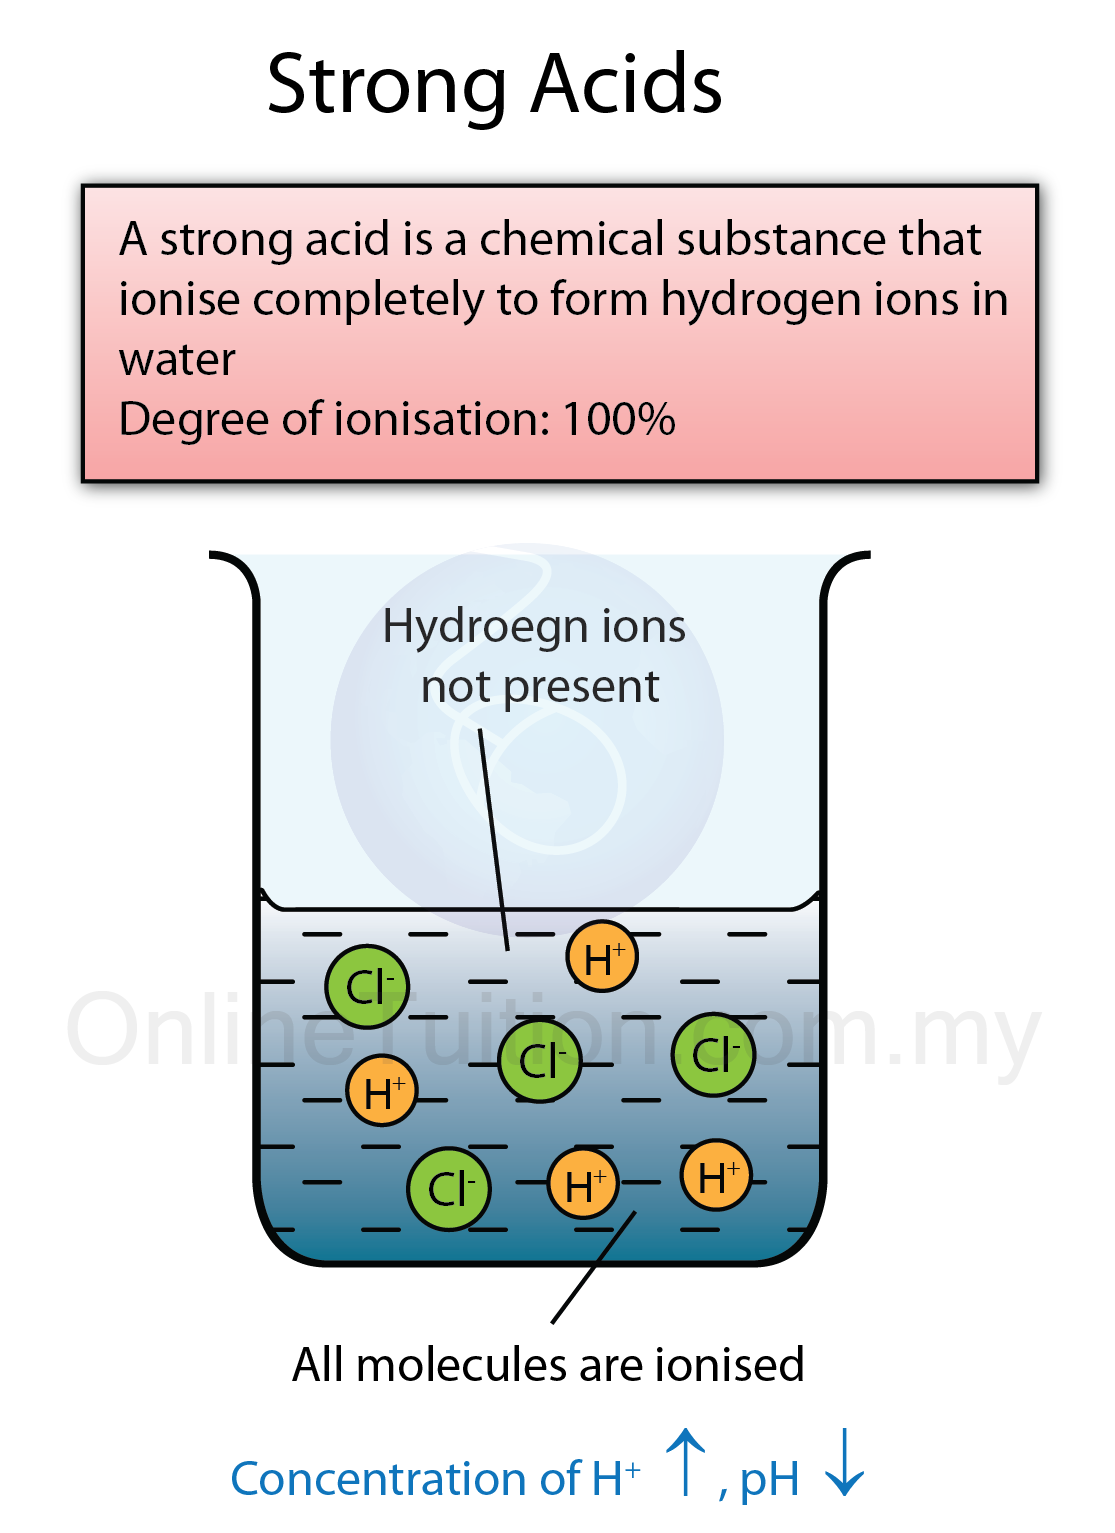 ... acids are acids that ionise completely to form hydrogen ions in water